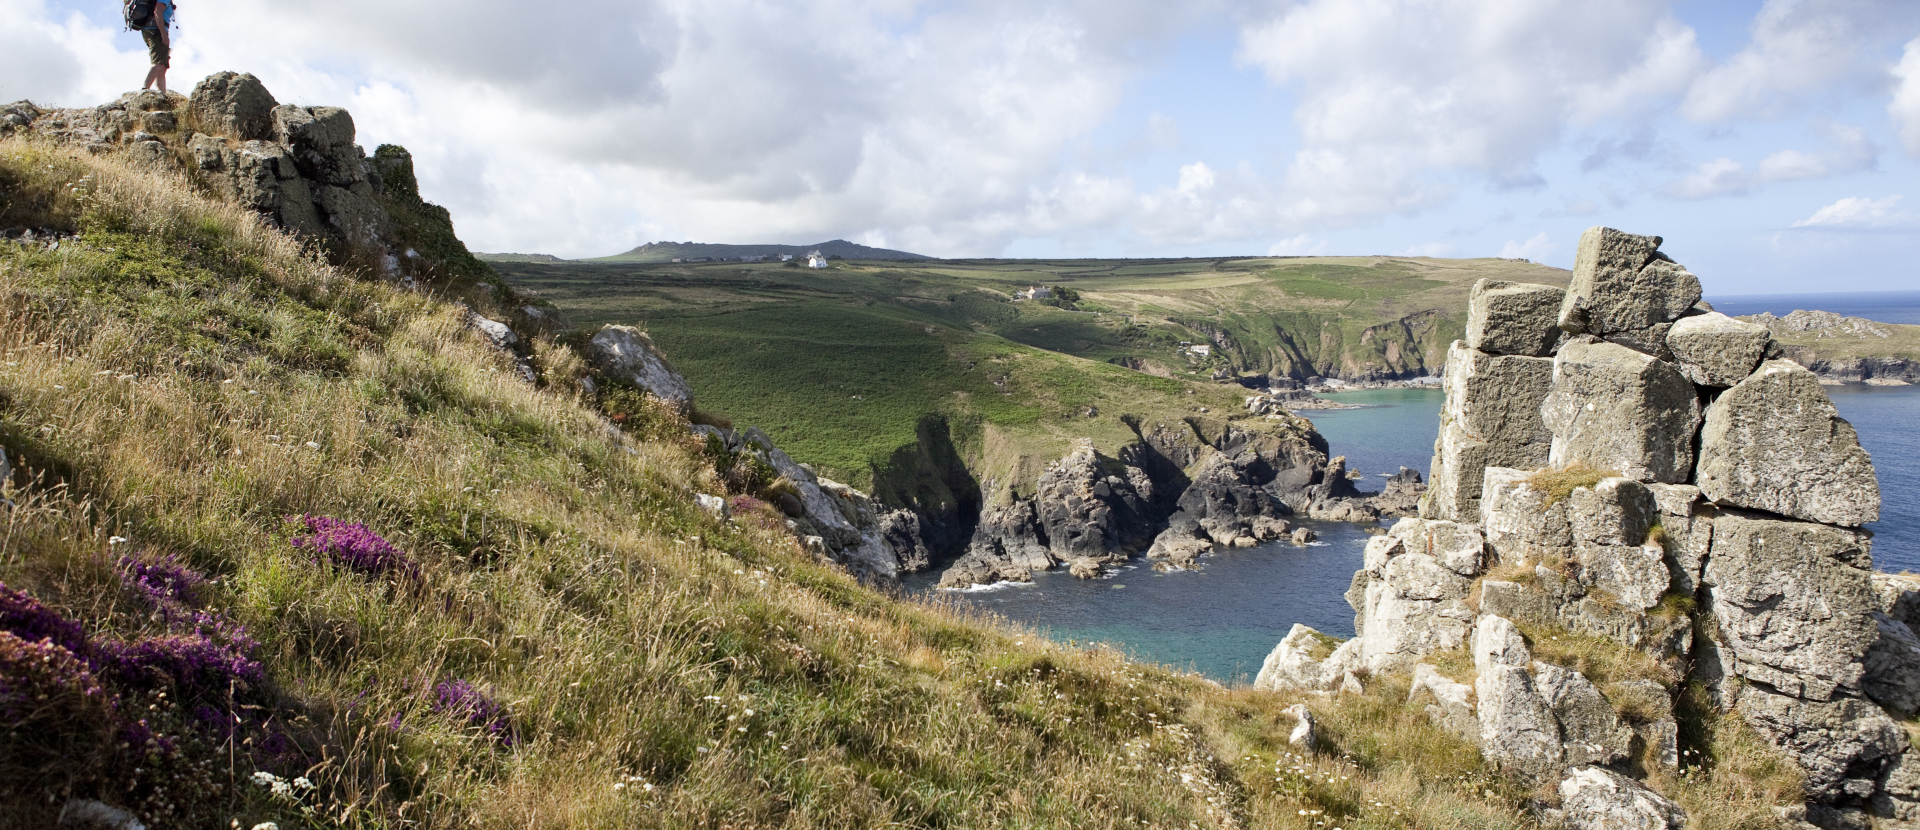 Cornwall Zennor Cape